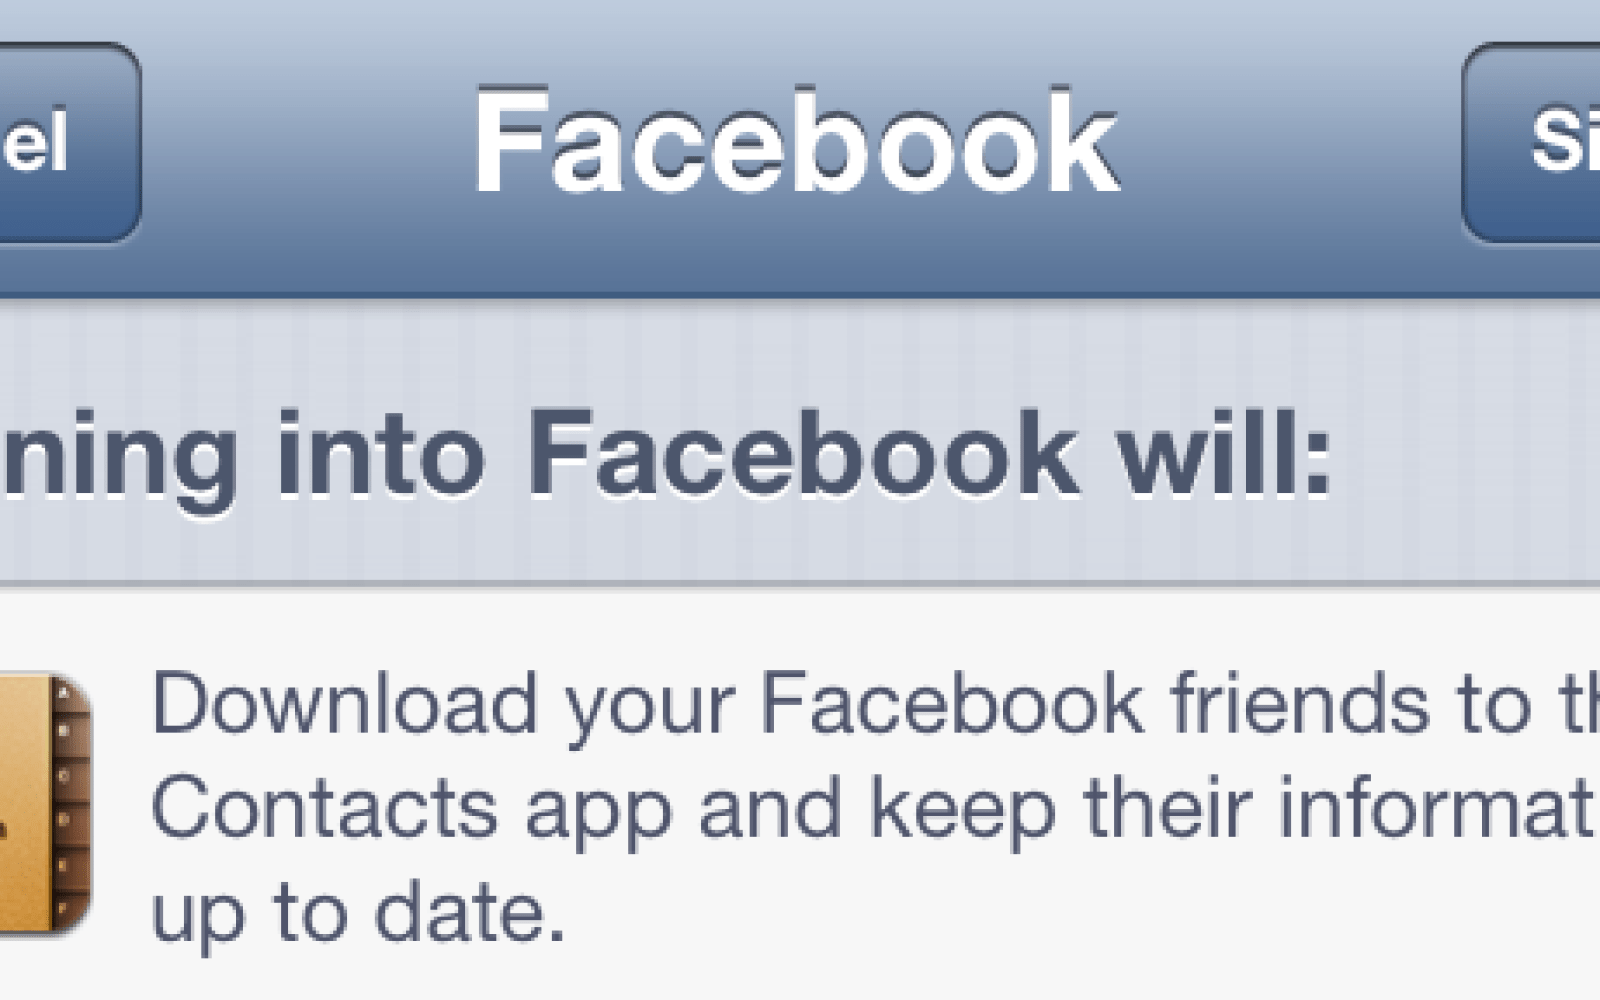 Facebook aims to declutter the iOS Contacts app by no longer syncing friends without useful contact info